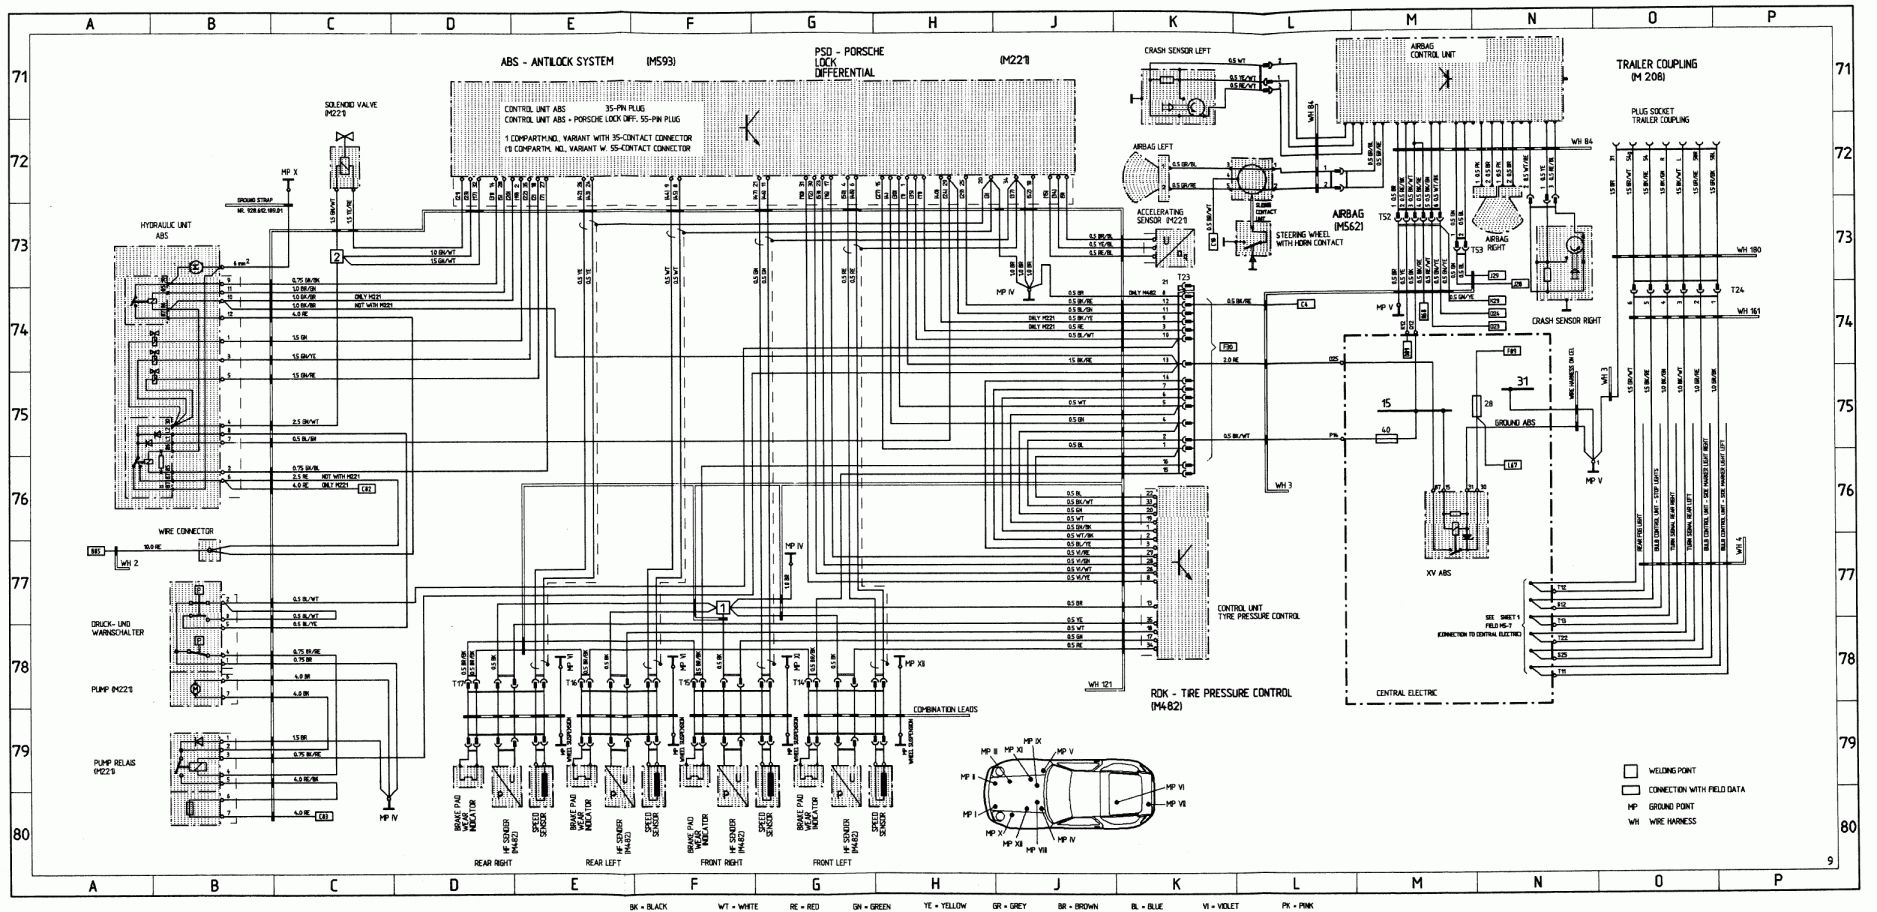 10+ Bmw E36 Engine Wiring Diagram | Electrical wiring diagram, Bmw e46,  DiagramPinterest